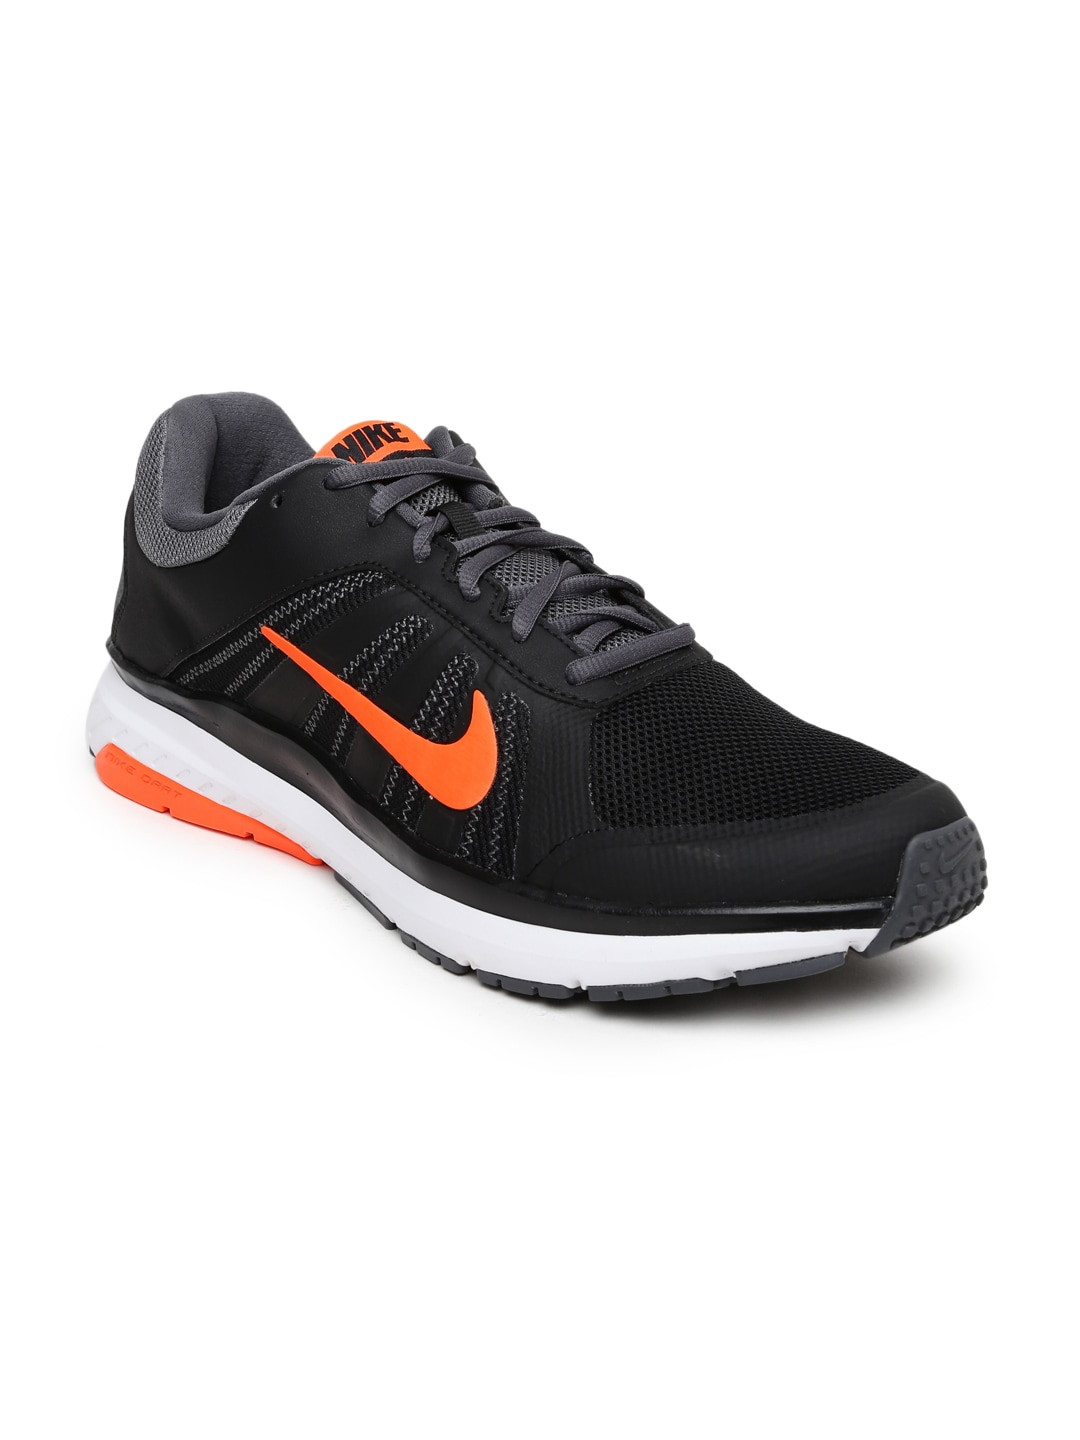 Sports Shoes for Men - Buy Men Sports Shoes Online in India - Myntra 8ef207ac4e437